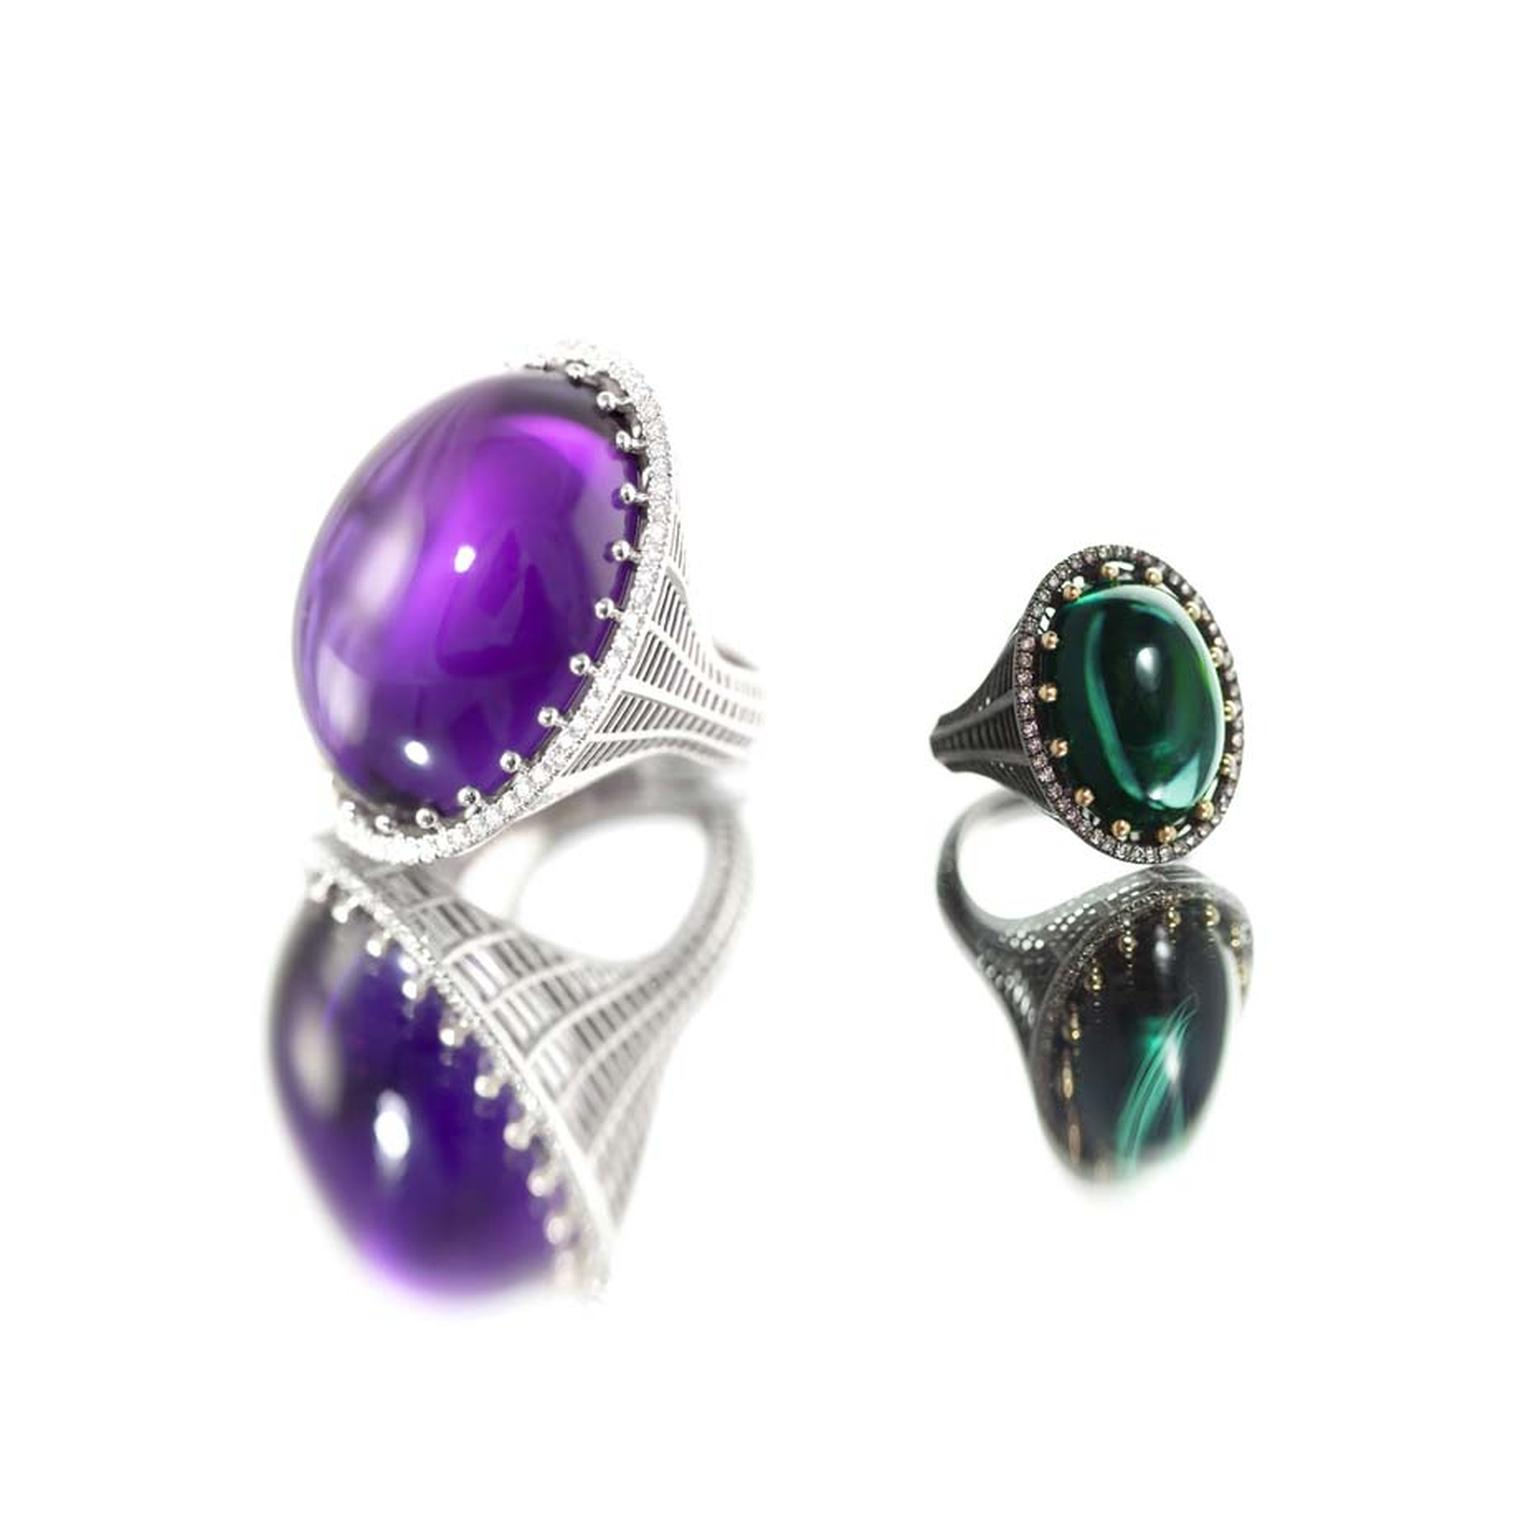 Roule & Co Cab cocktail rings in white gold with amethyst and white diamonds (left) or blackened yellow gold with green tourmaline and champagne diamonds (right).